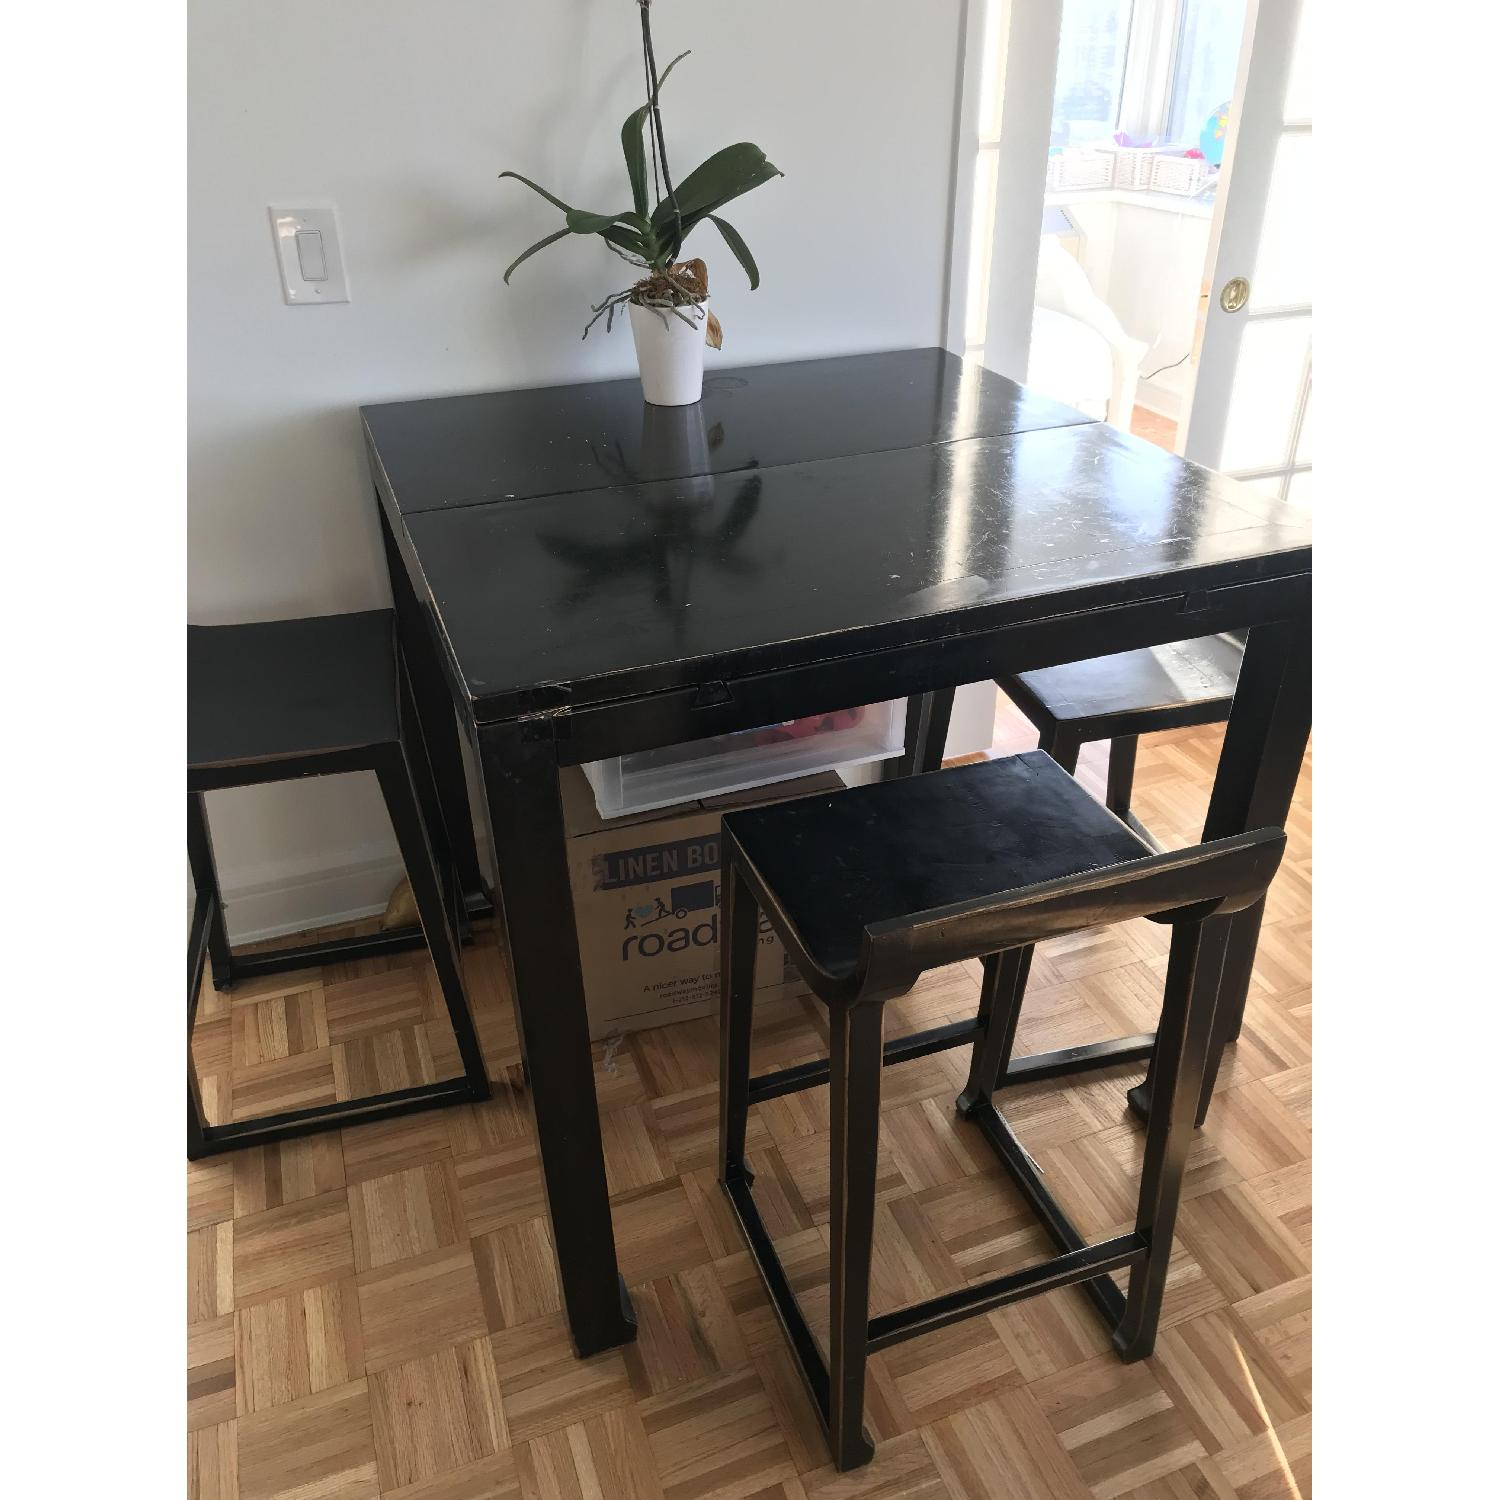 Selfridges Foldable Lacquered Black Table w/ 4 Chairs-1